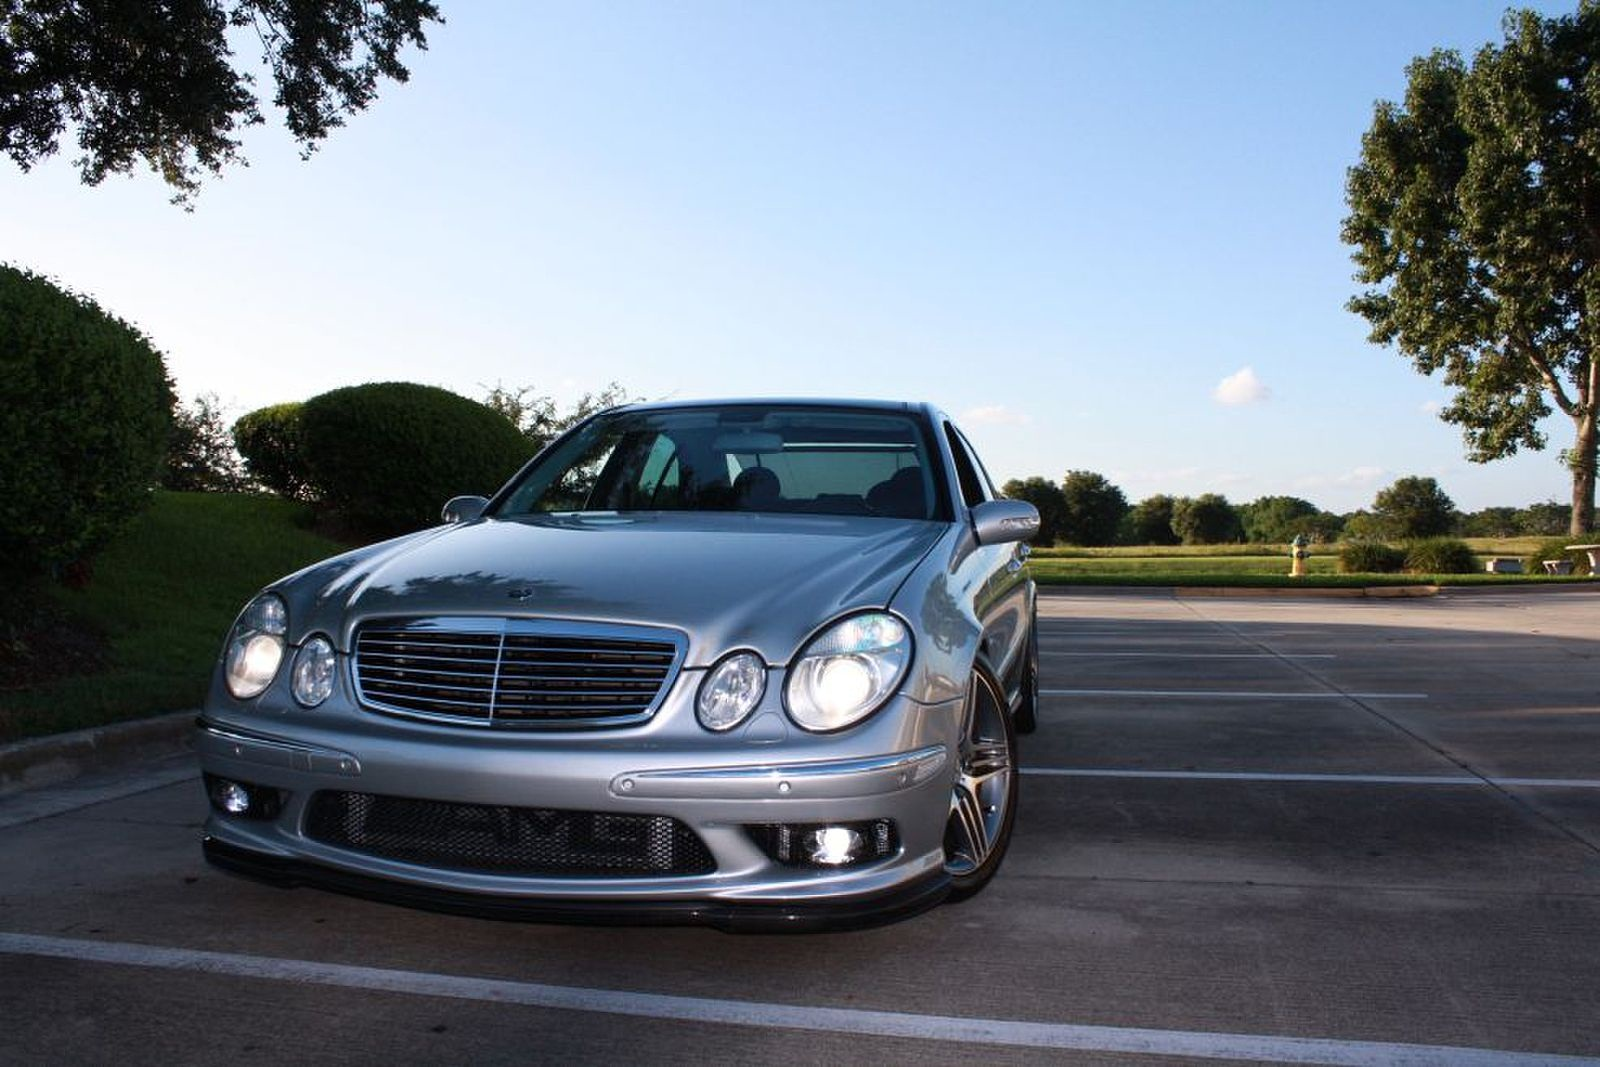 2005 Mercedes Benz E55 AMG Picture, Mods, Upgrades